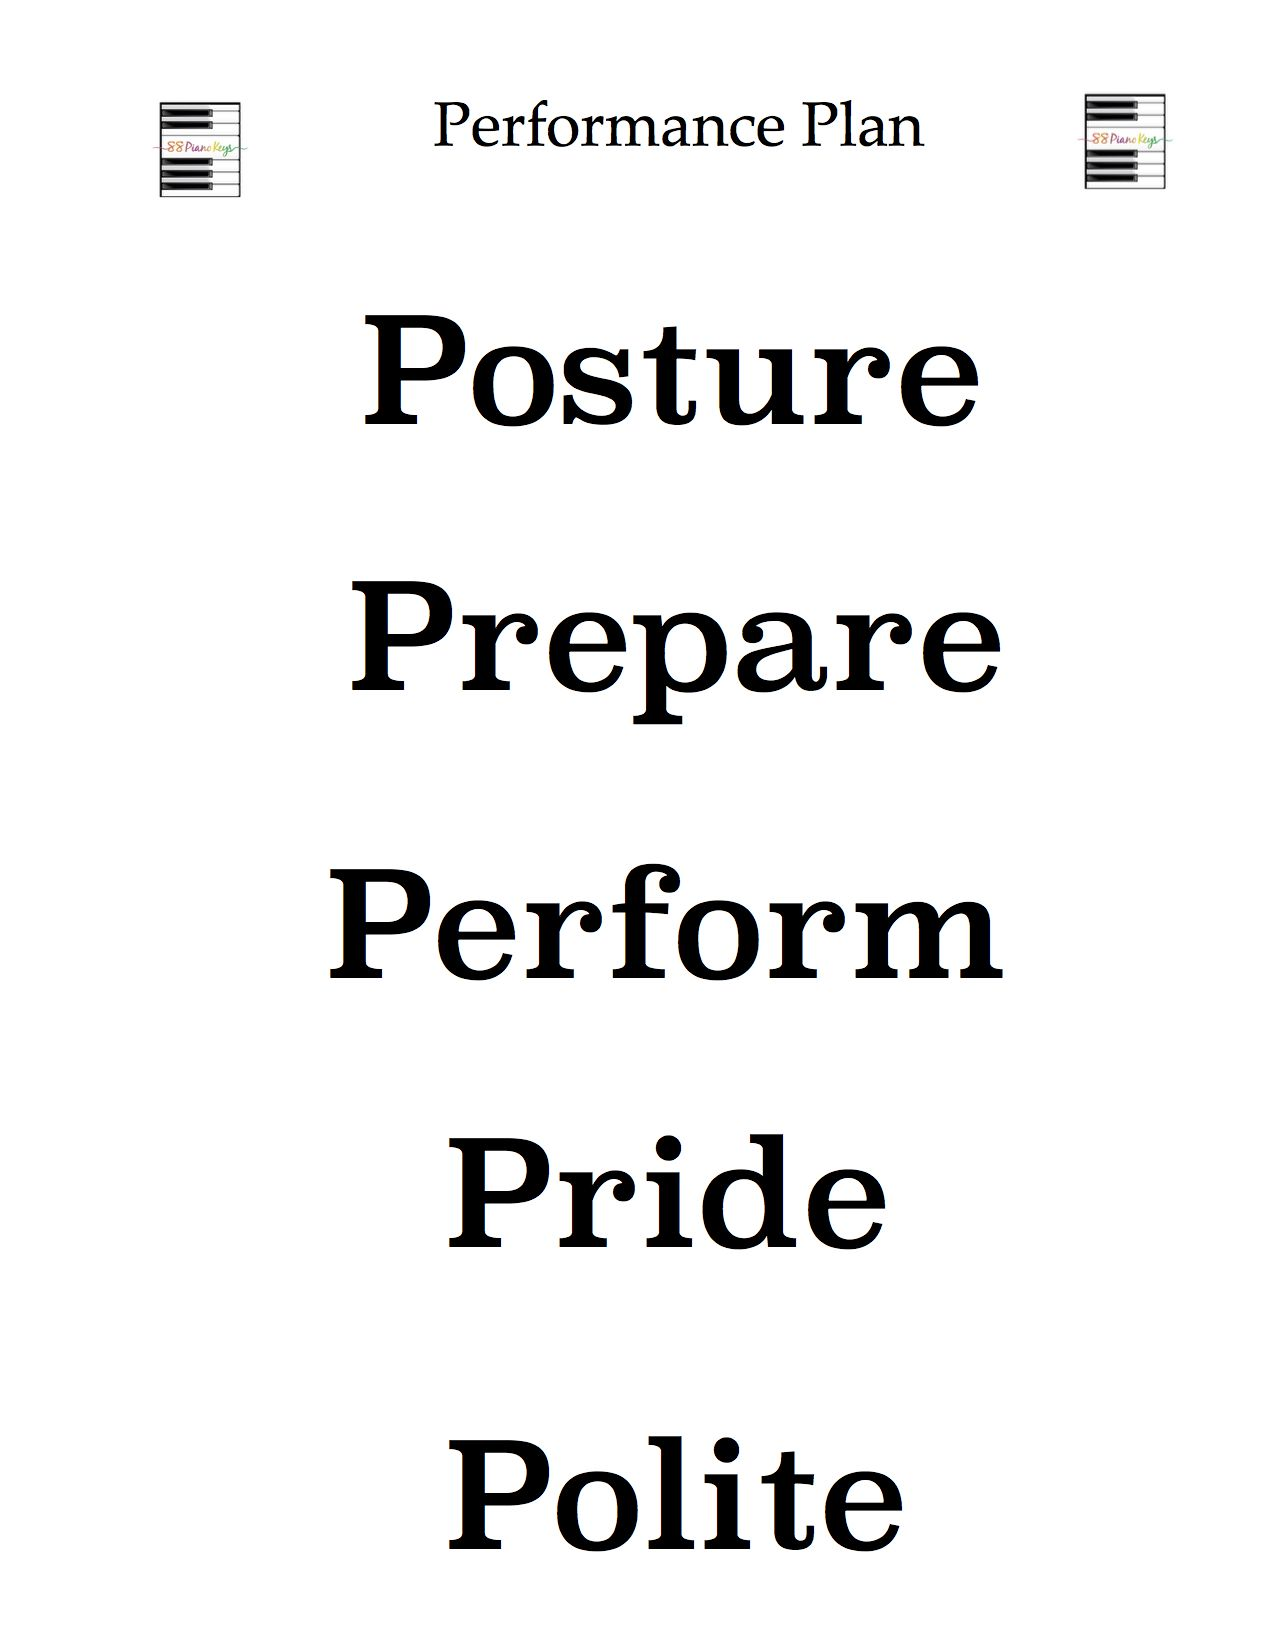 From Head to Toe Performance Tip #1: Five P's of